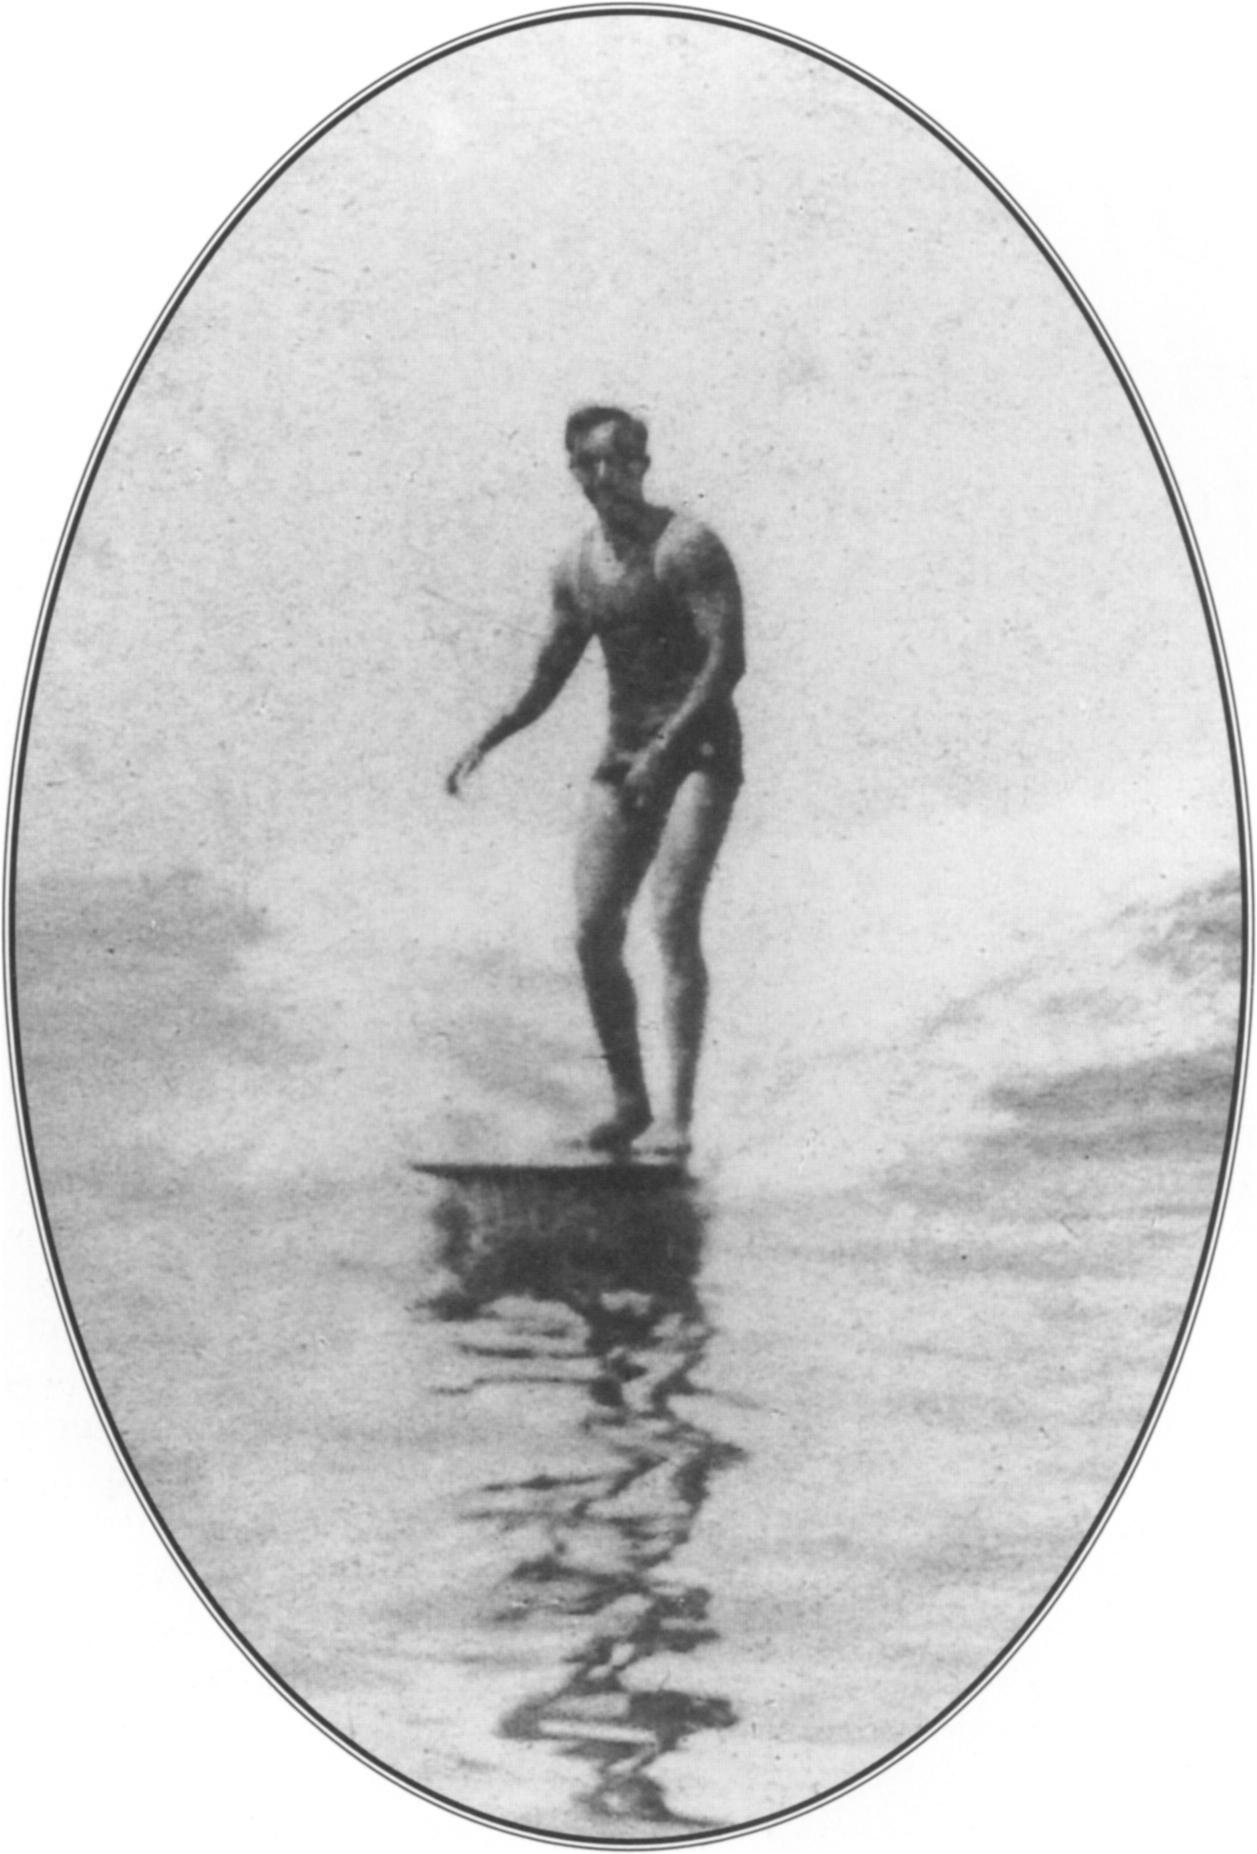 aking it look easy, Freeth rode a wave into the shore at Hermosa Beach in 1909. Courtesy Redondo Beach Historical Commission.